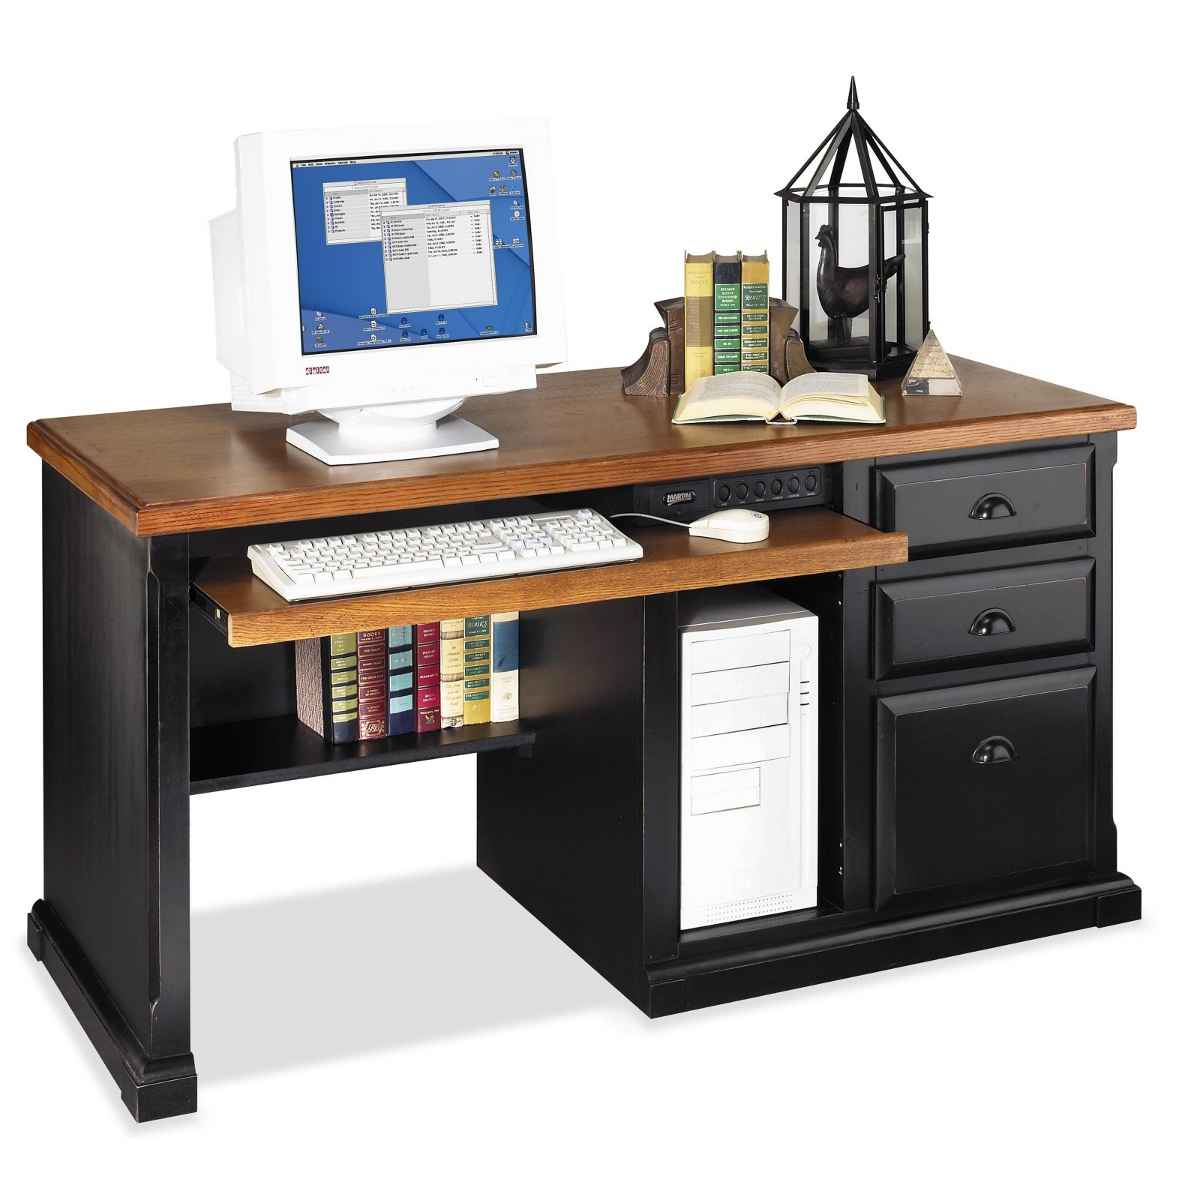 Kathy Ireland Southampton black desk for computer